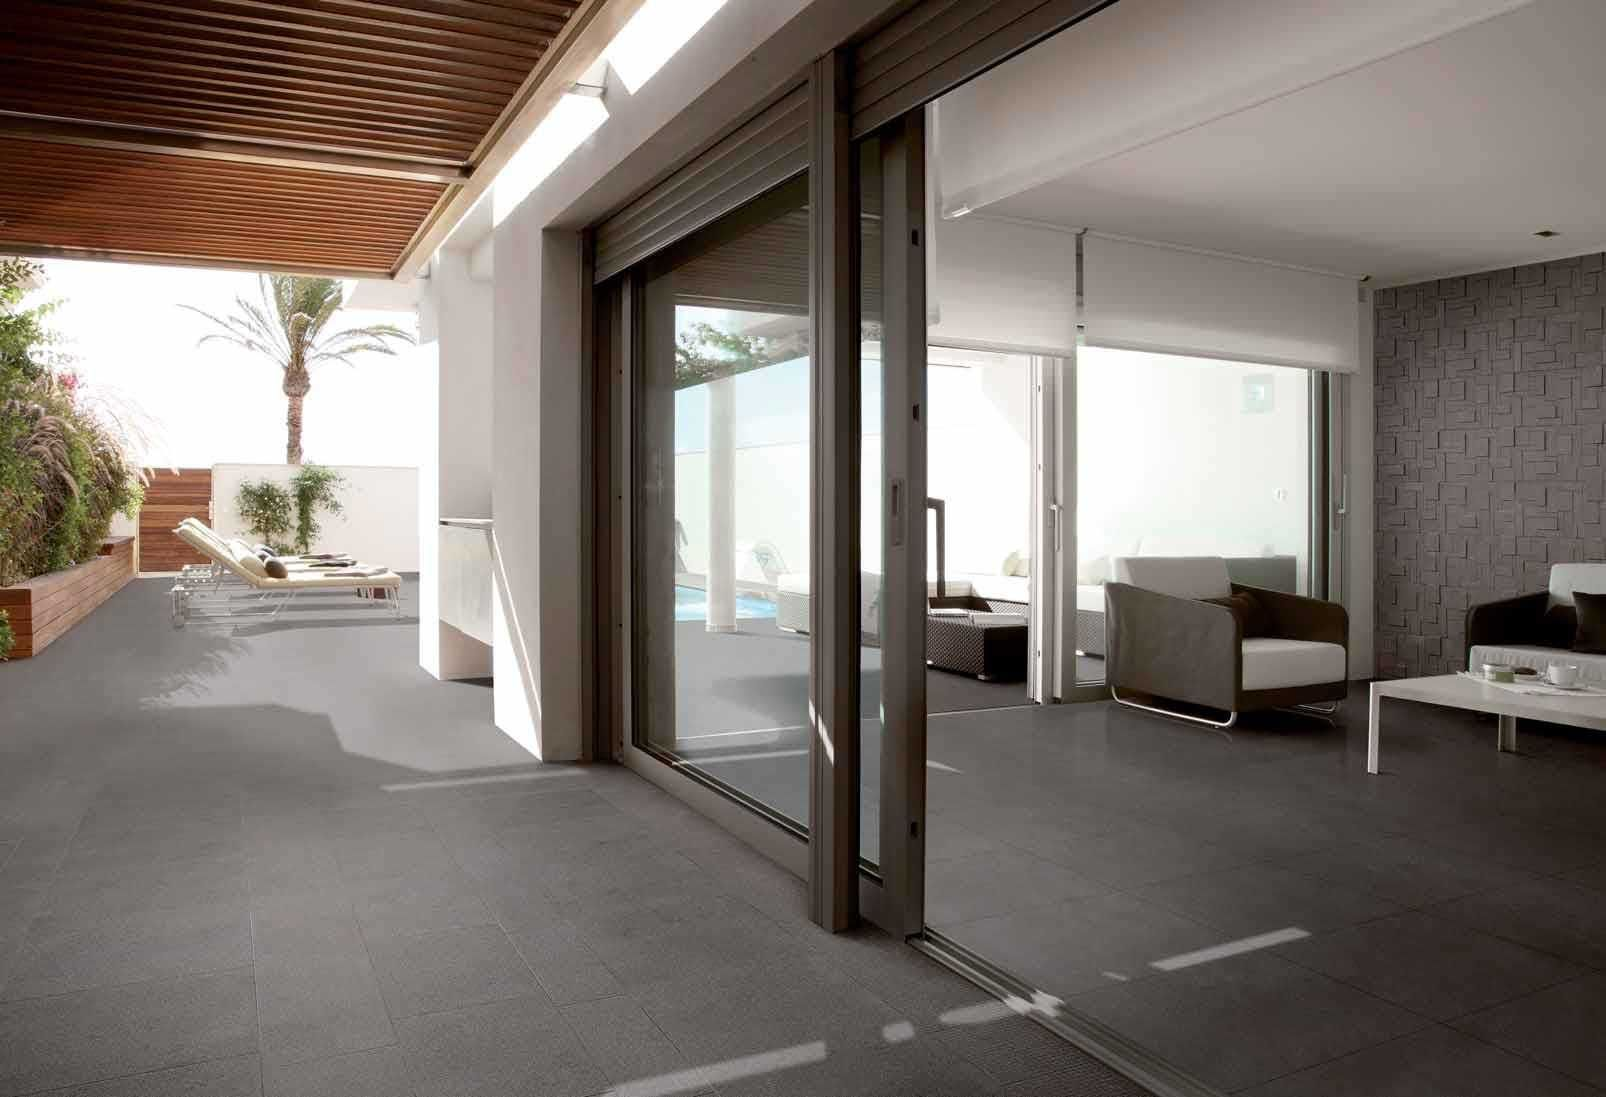 wall detail - floor moves from inside to outside giving illusion of larger space. Large glass doors